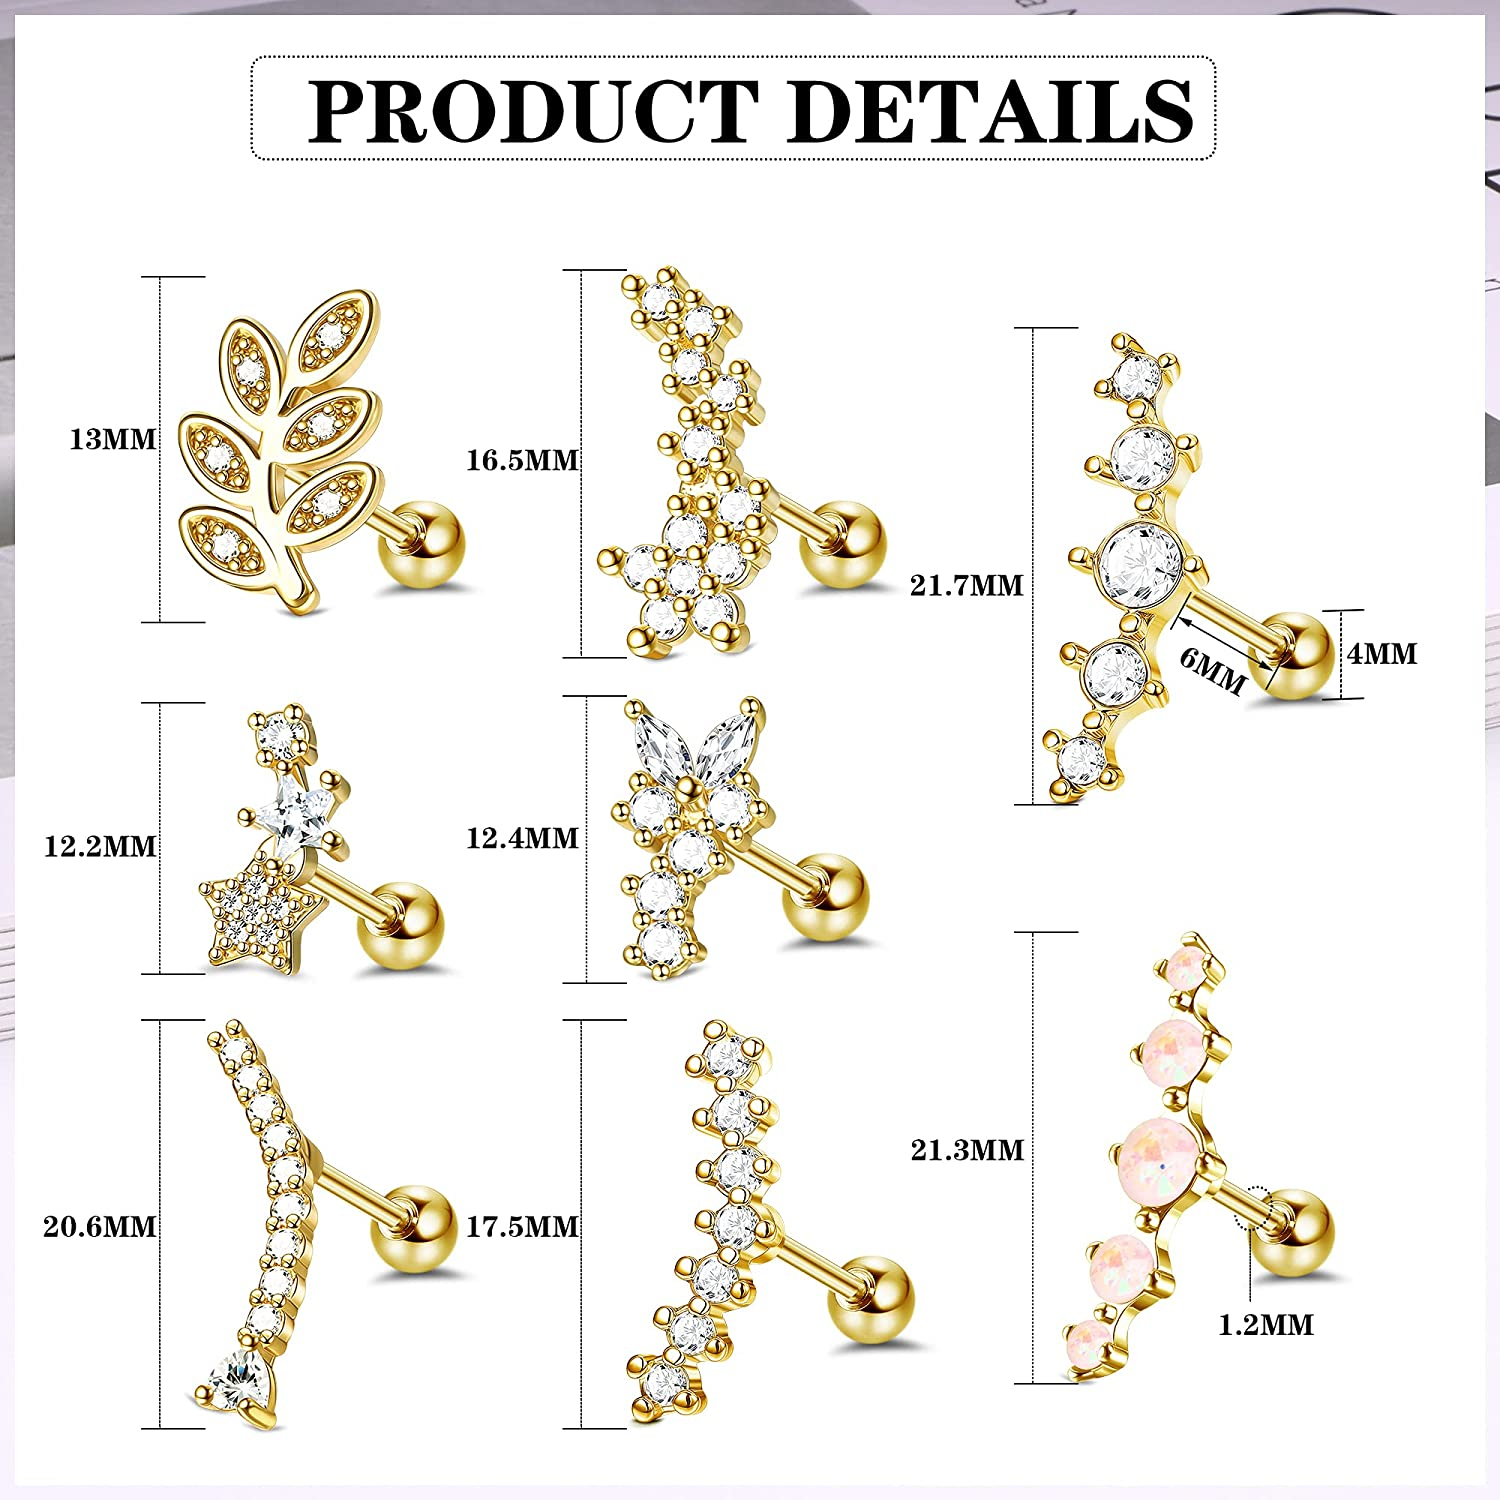 Drperfect 16G Stainless Steel Cartilage Earring Stud for Women Men Leaf Flower Butterfly Star Heart Curved CZ Conch Helix Piercing Jewelry